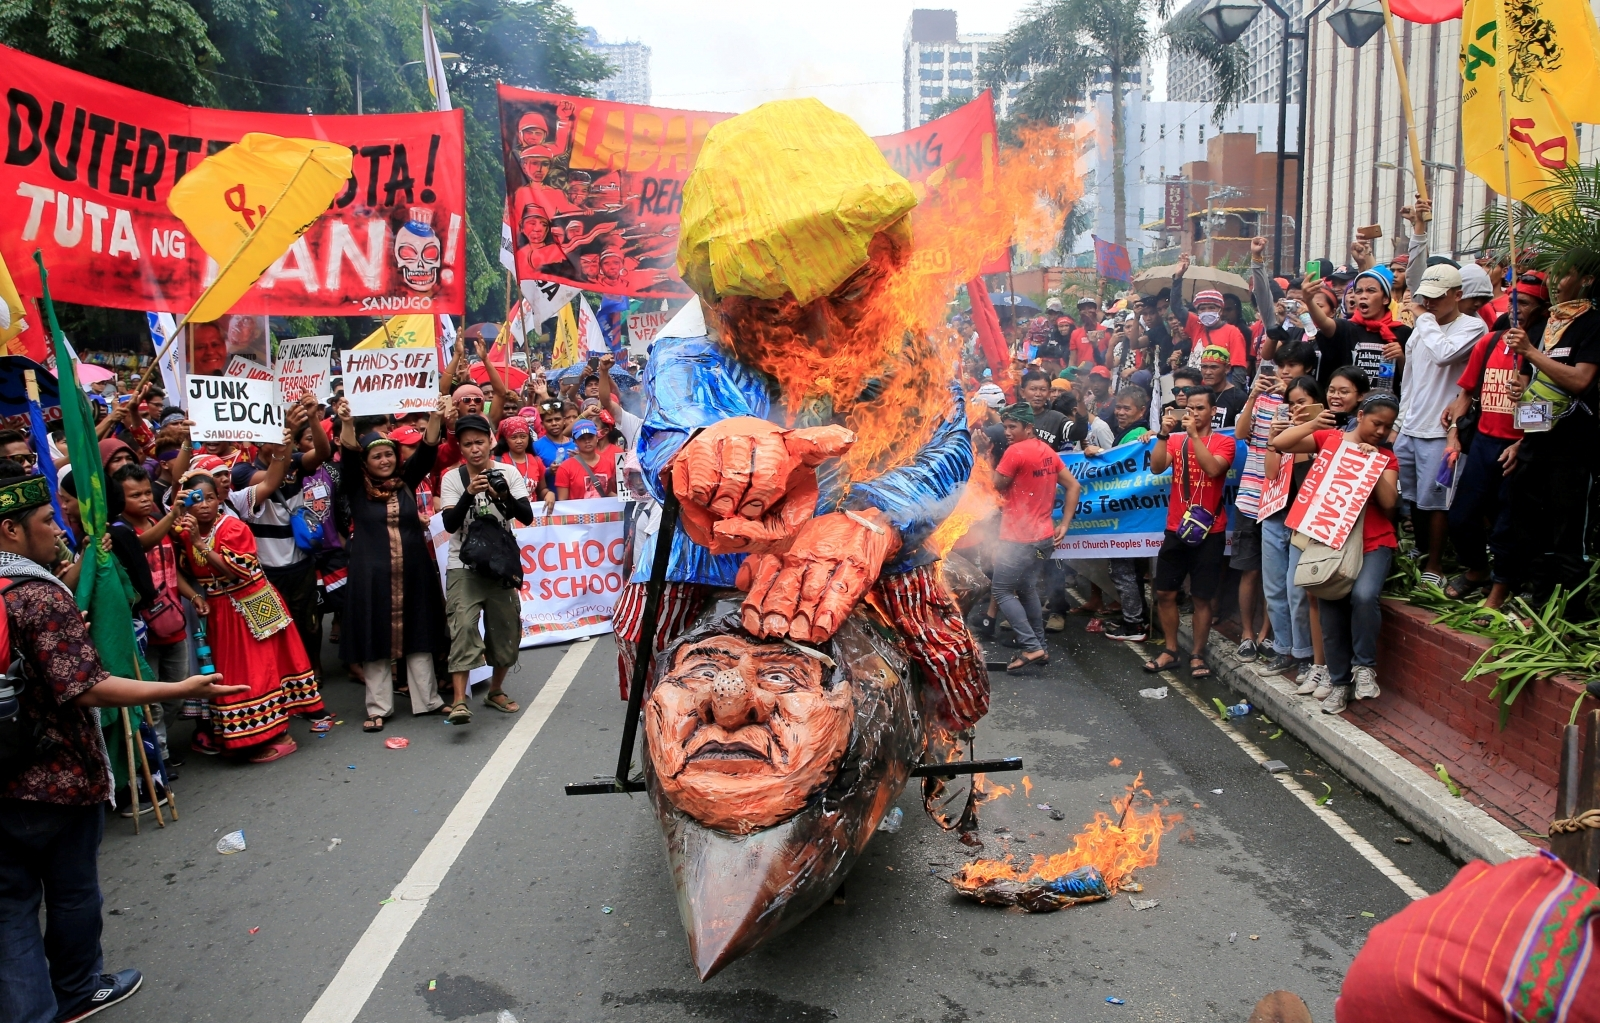 Trump-Duterte effigy burny